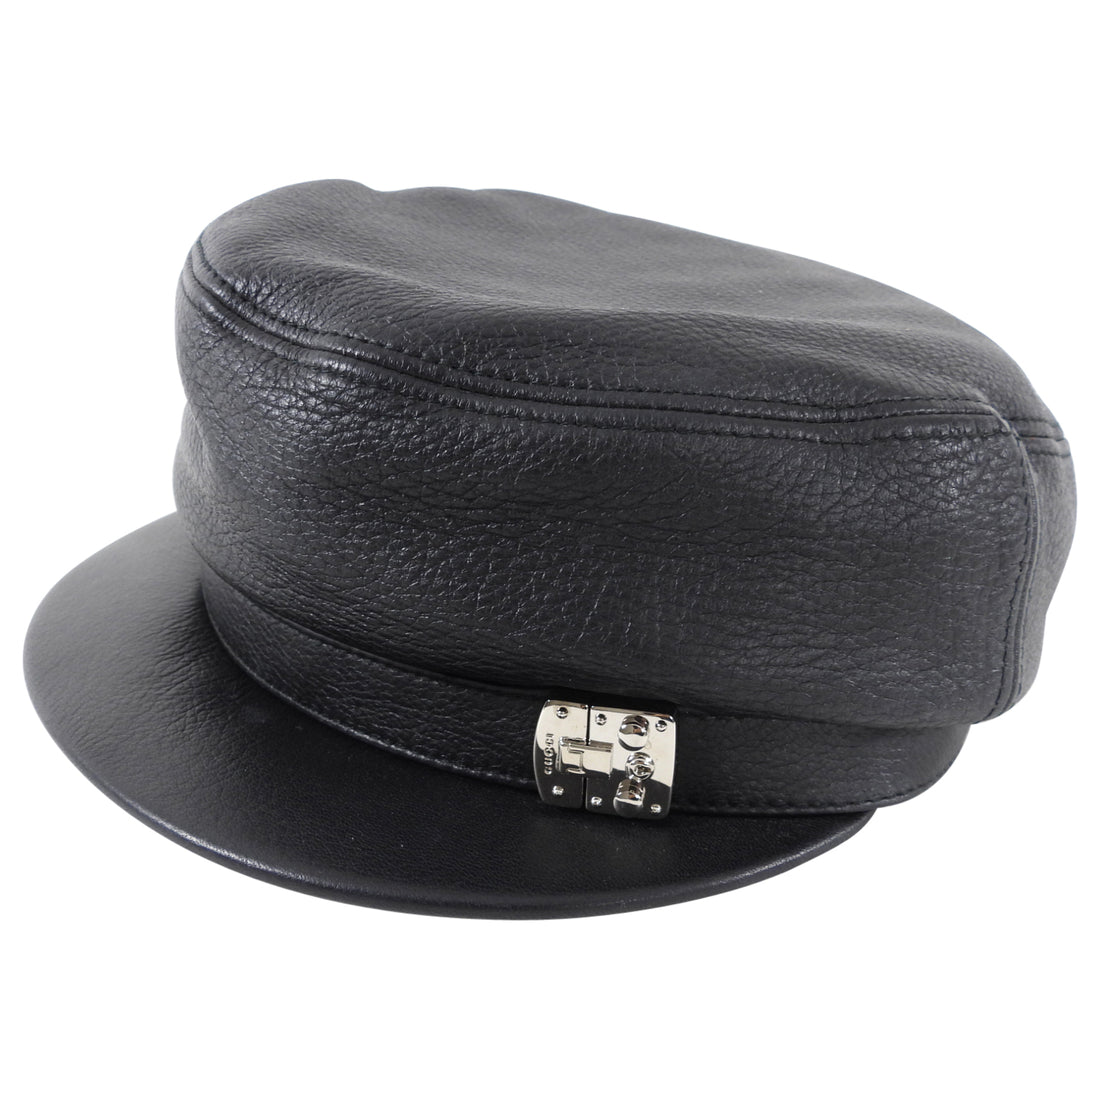 Gucci Black Leather Newsboy Hat with Silver Detail